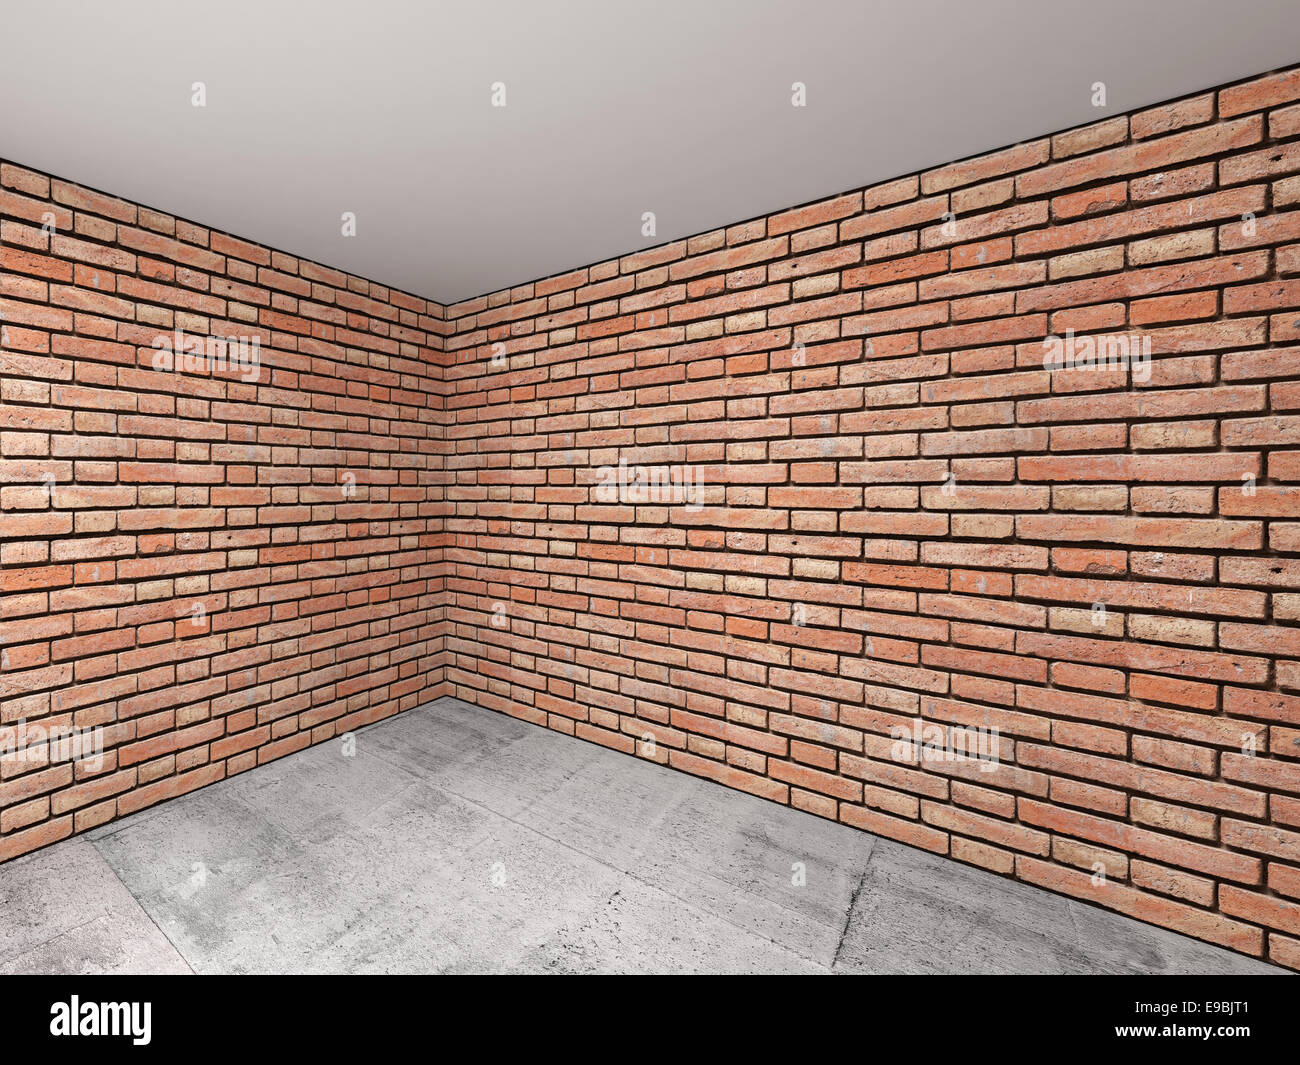 Empty Room Interior With Red Brick Walls 3d Background